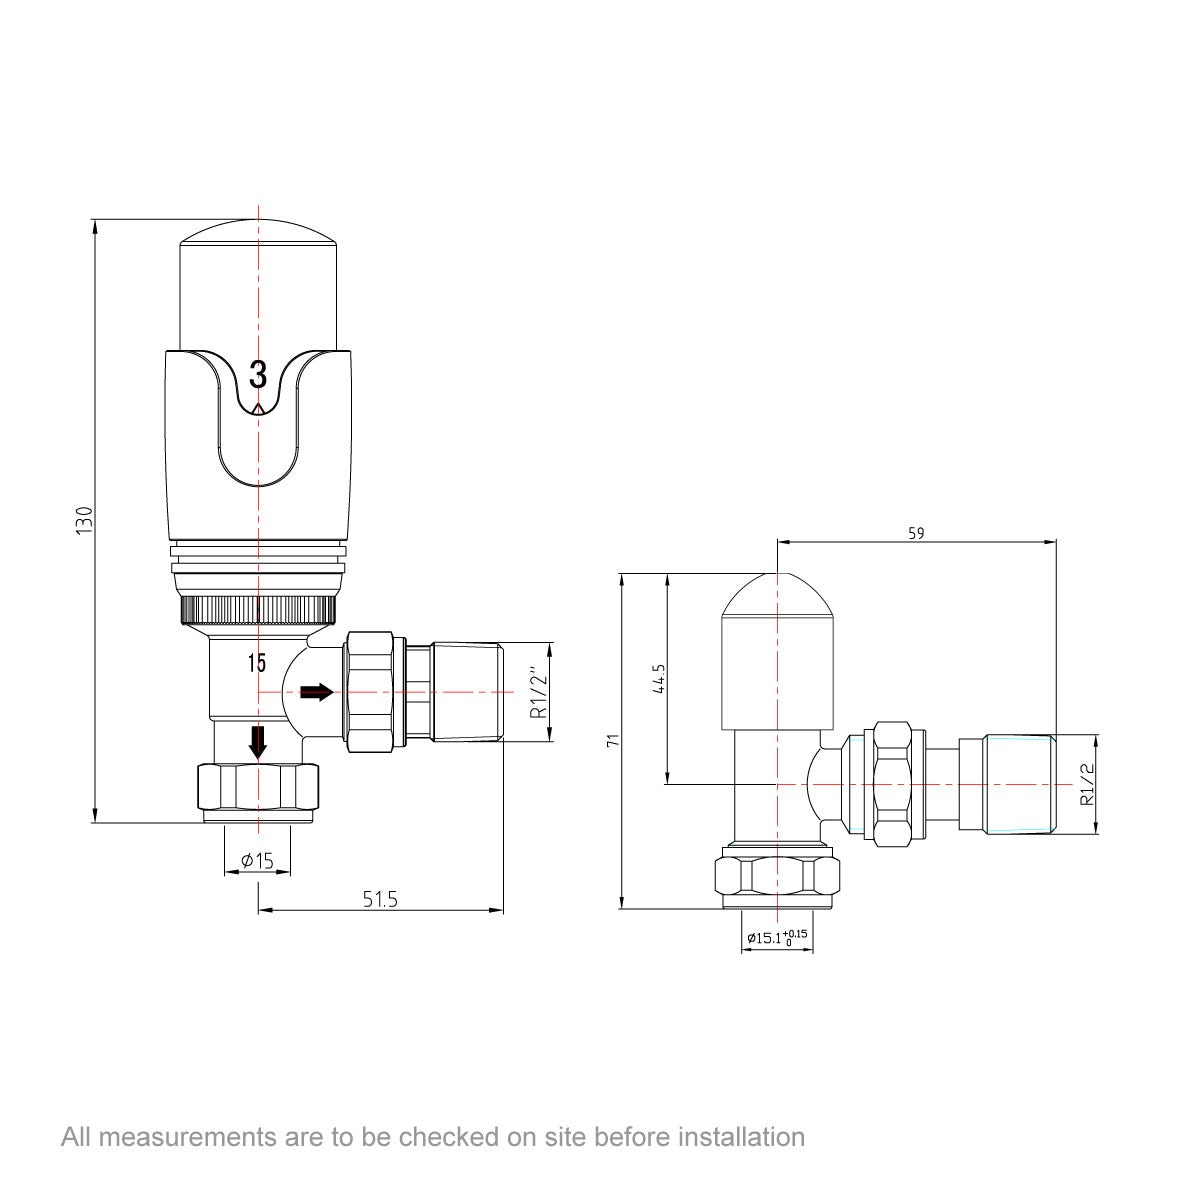 Dimensions for Orchard Thermostatic chrome angled radiator valves